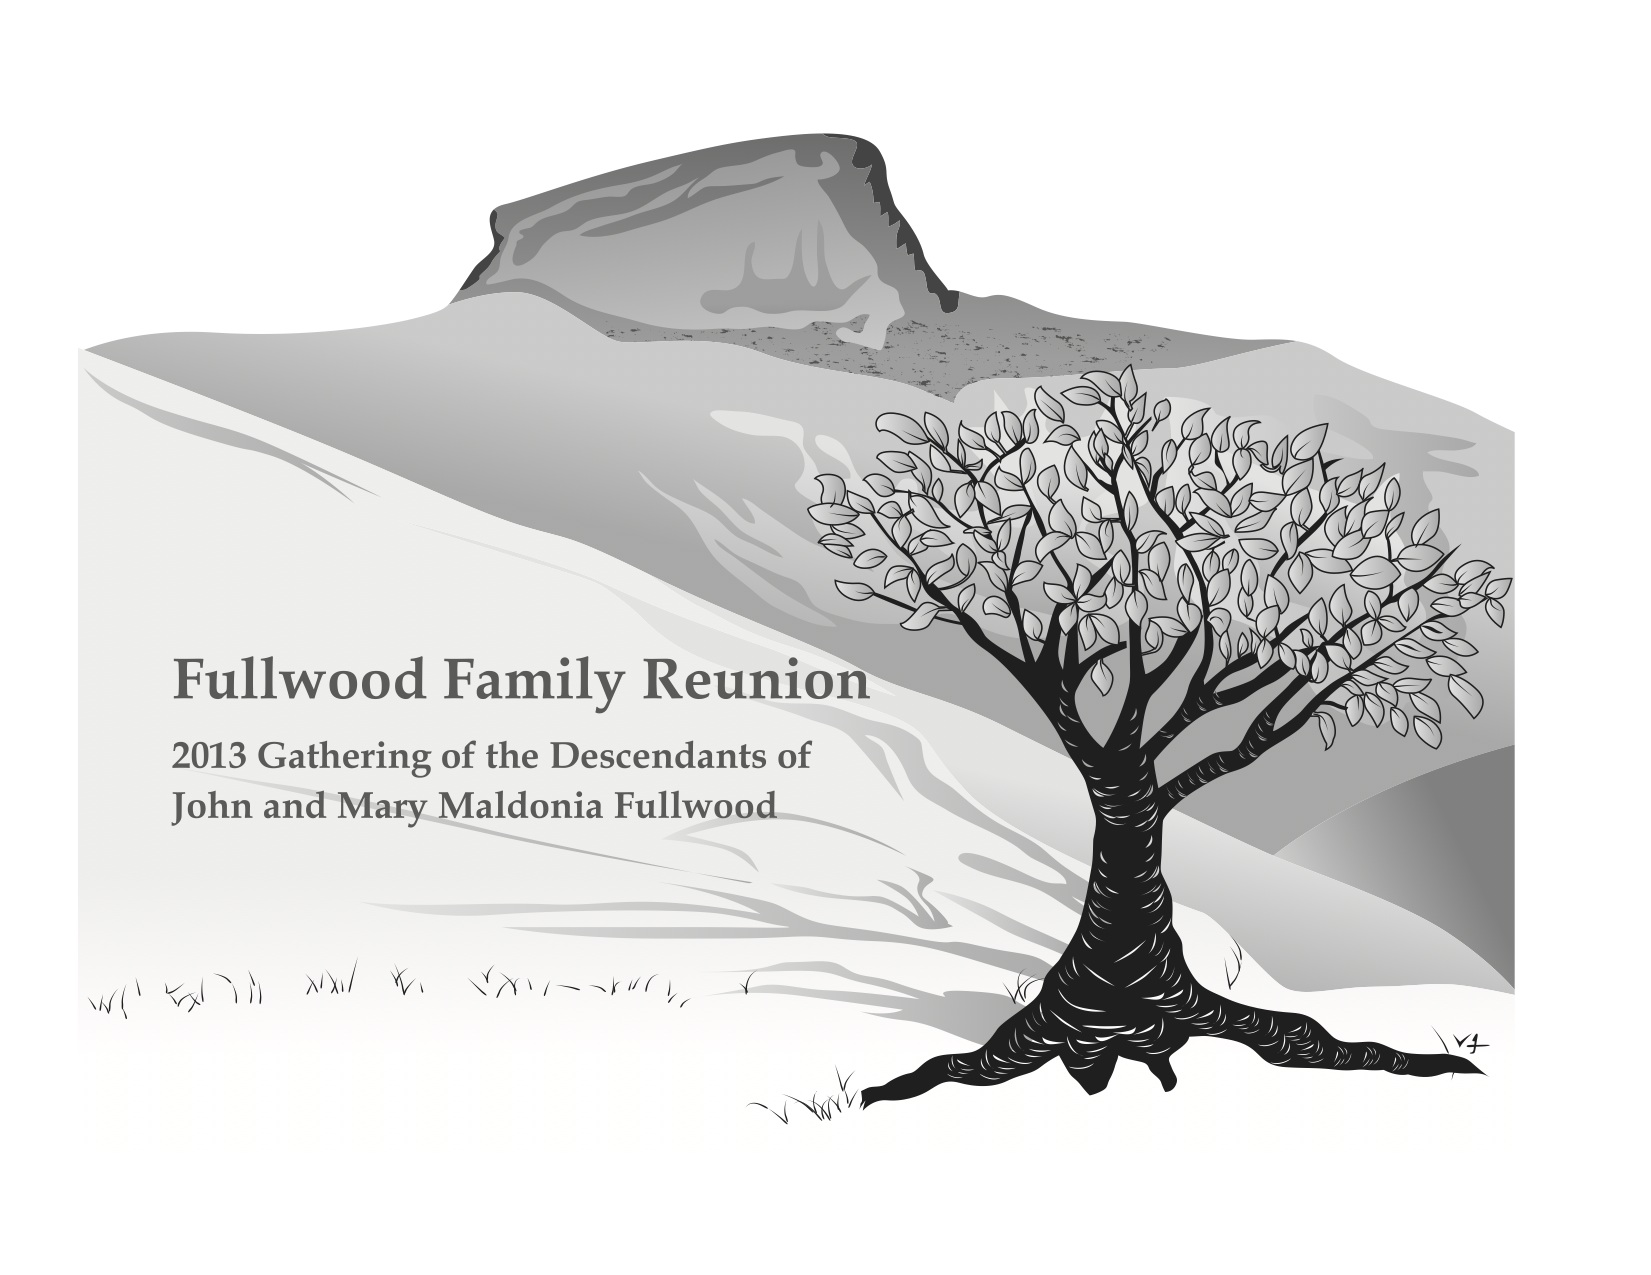 My drawing of North Carolina's Table Rock in the Linville Gorge area with my family tree that we used for the t-shirt at the 2013 Fullwood Family Reunion